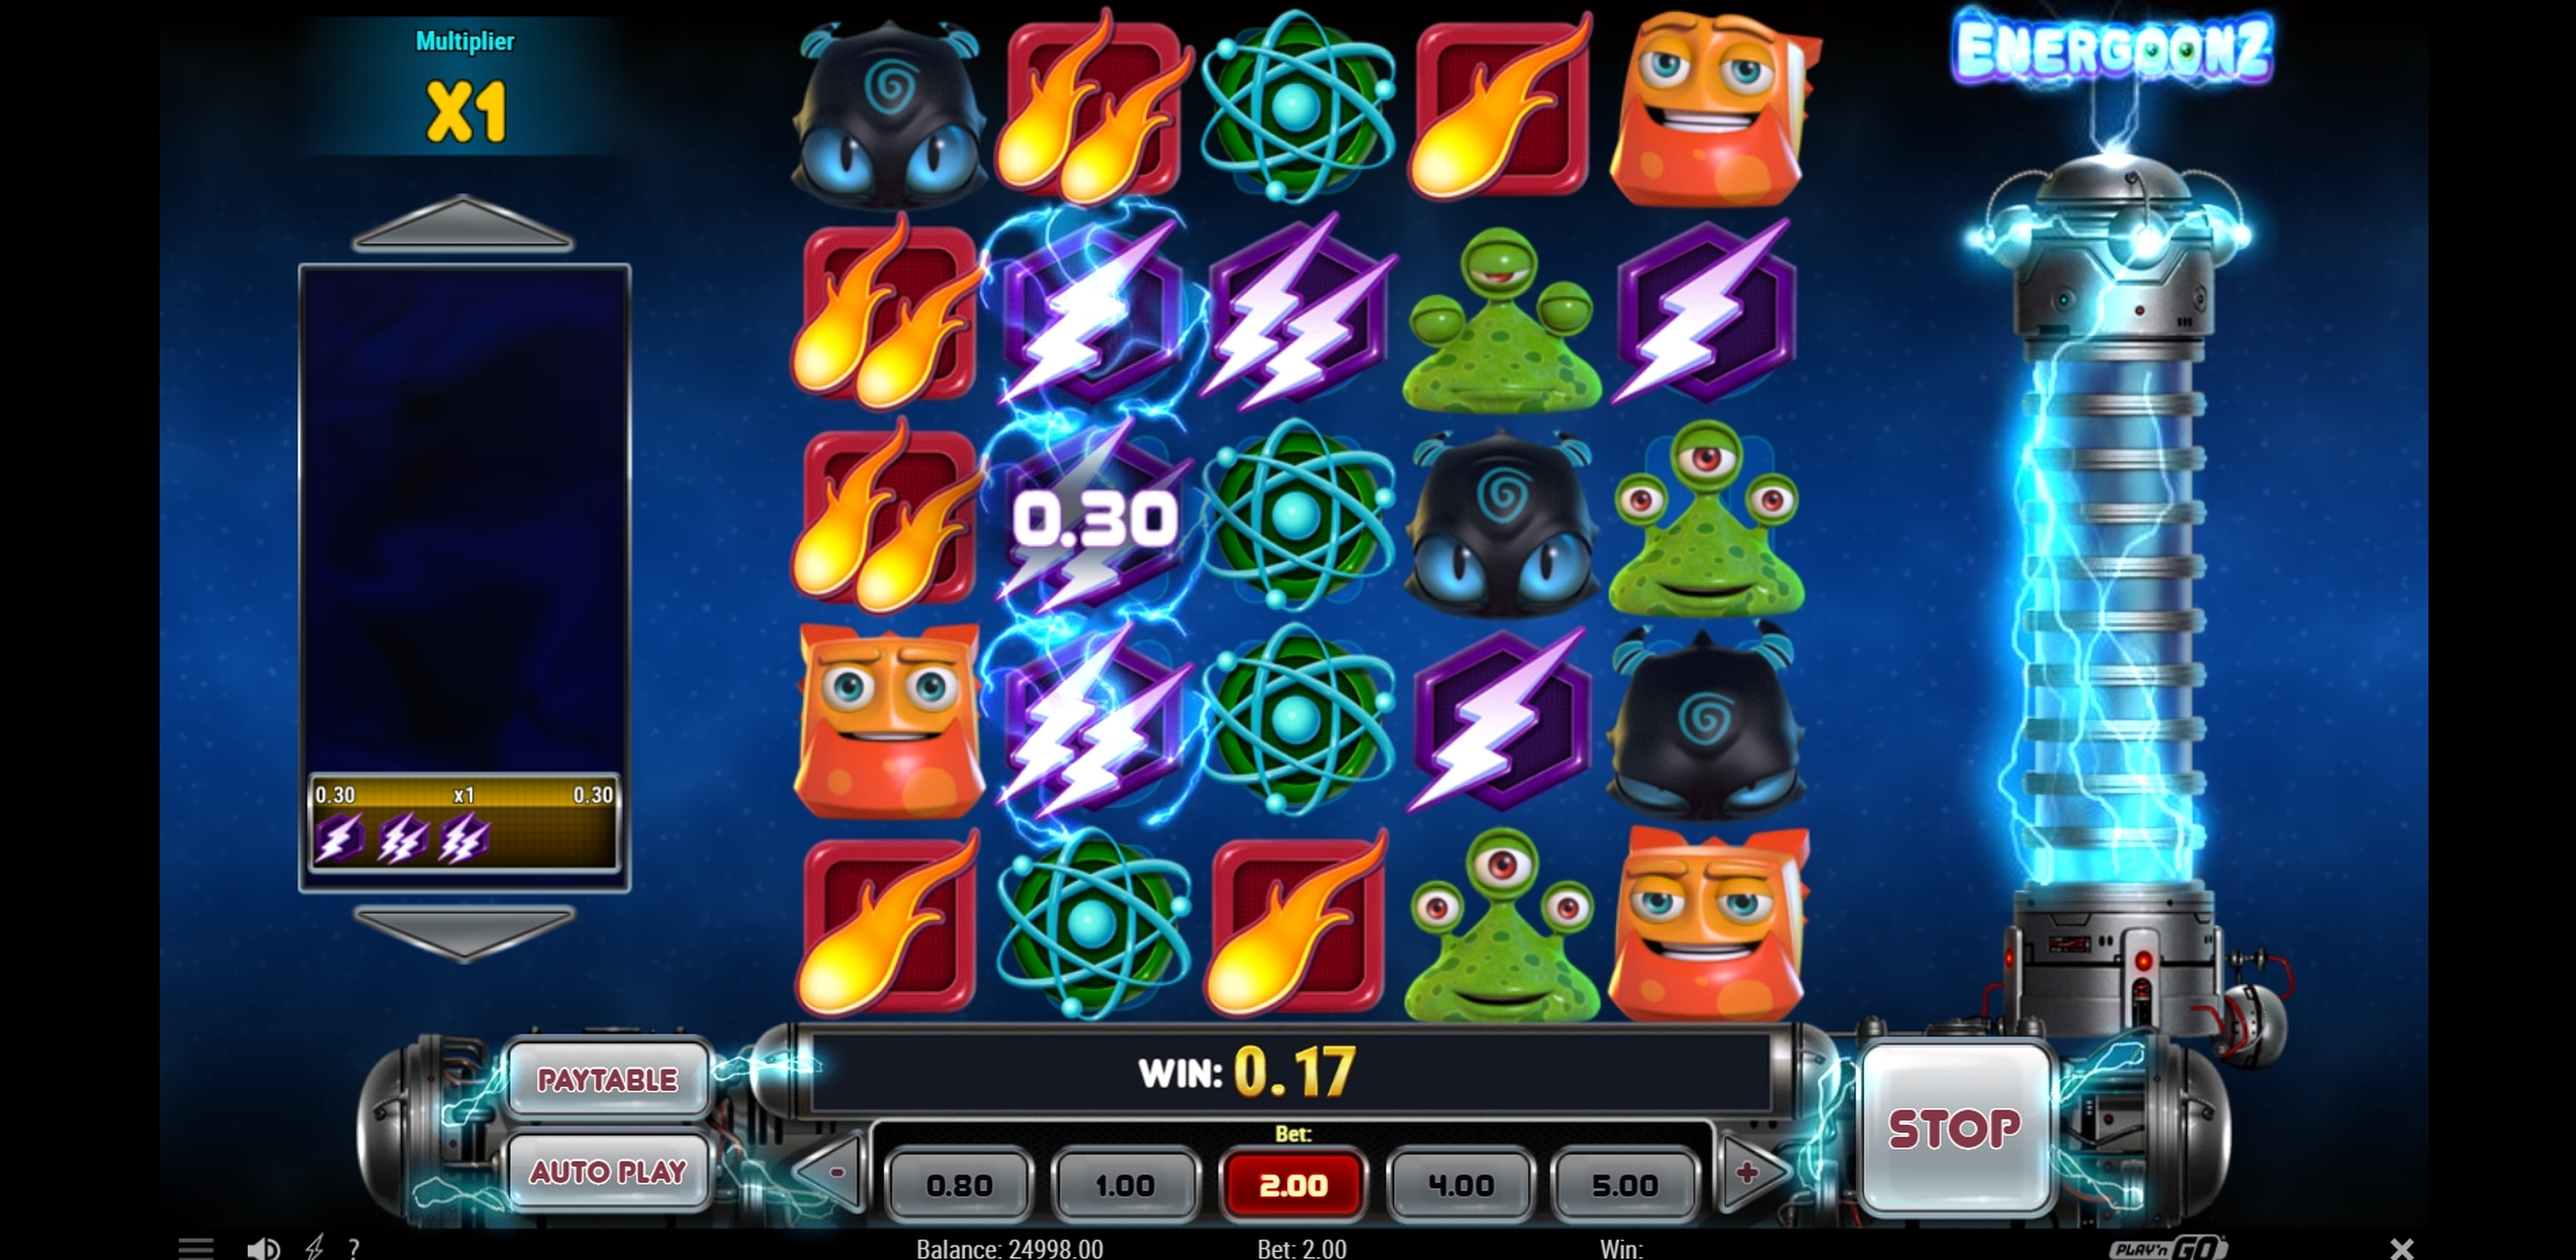 Win Money in Energoonz Free Slot Game by Play'n Go